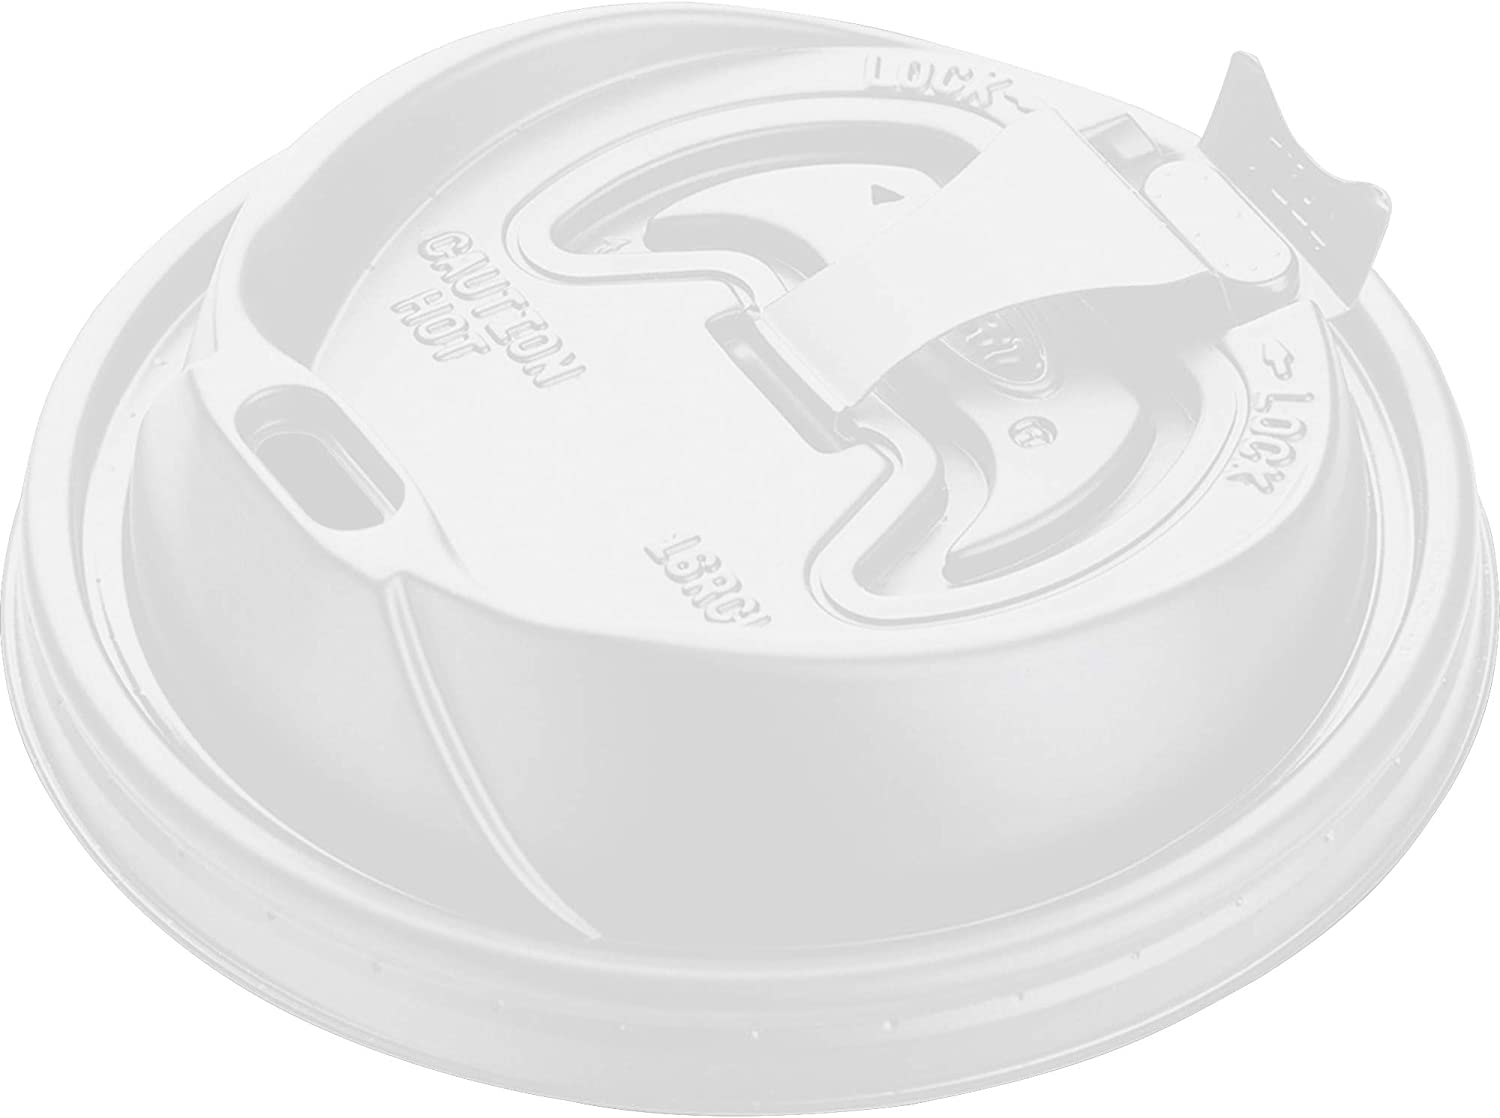 DART Reclosable Hot Beverage Cup Lid, White, 16 oz.